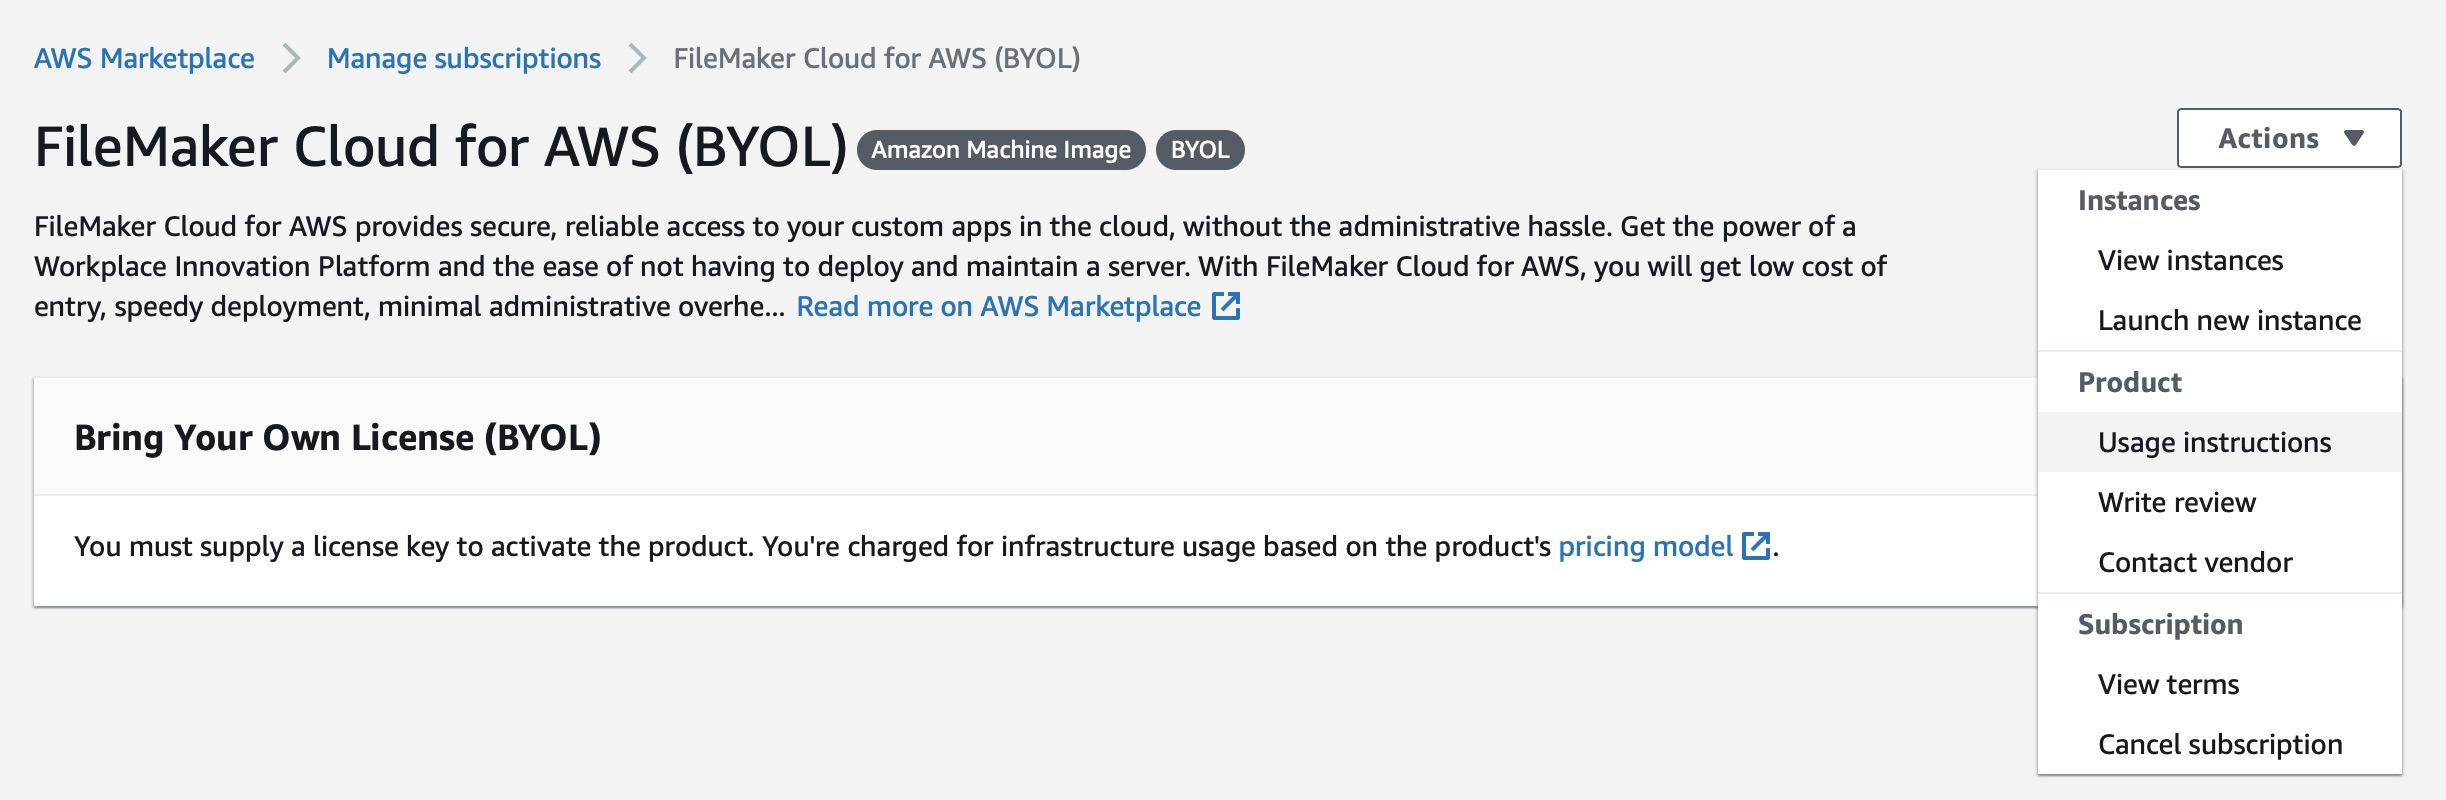 Getting started with FileMaker Cloud for AWS